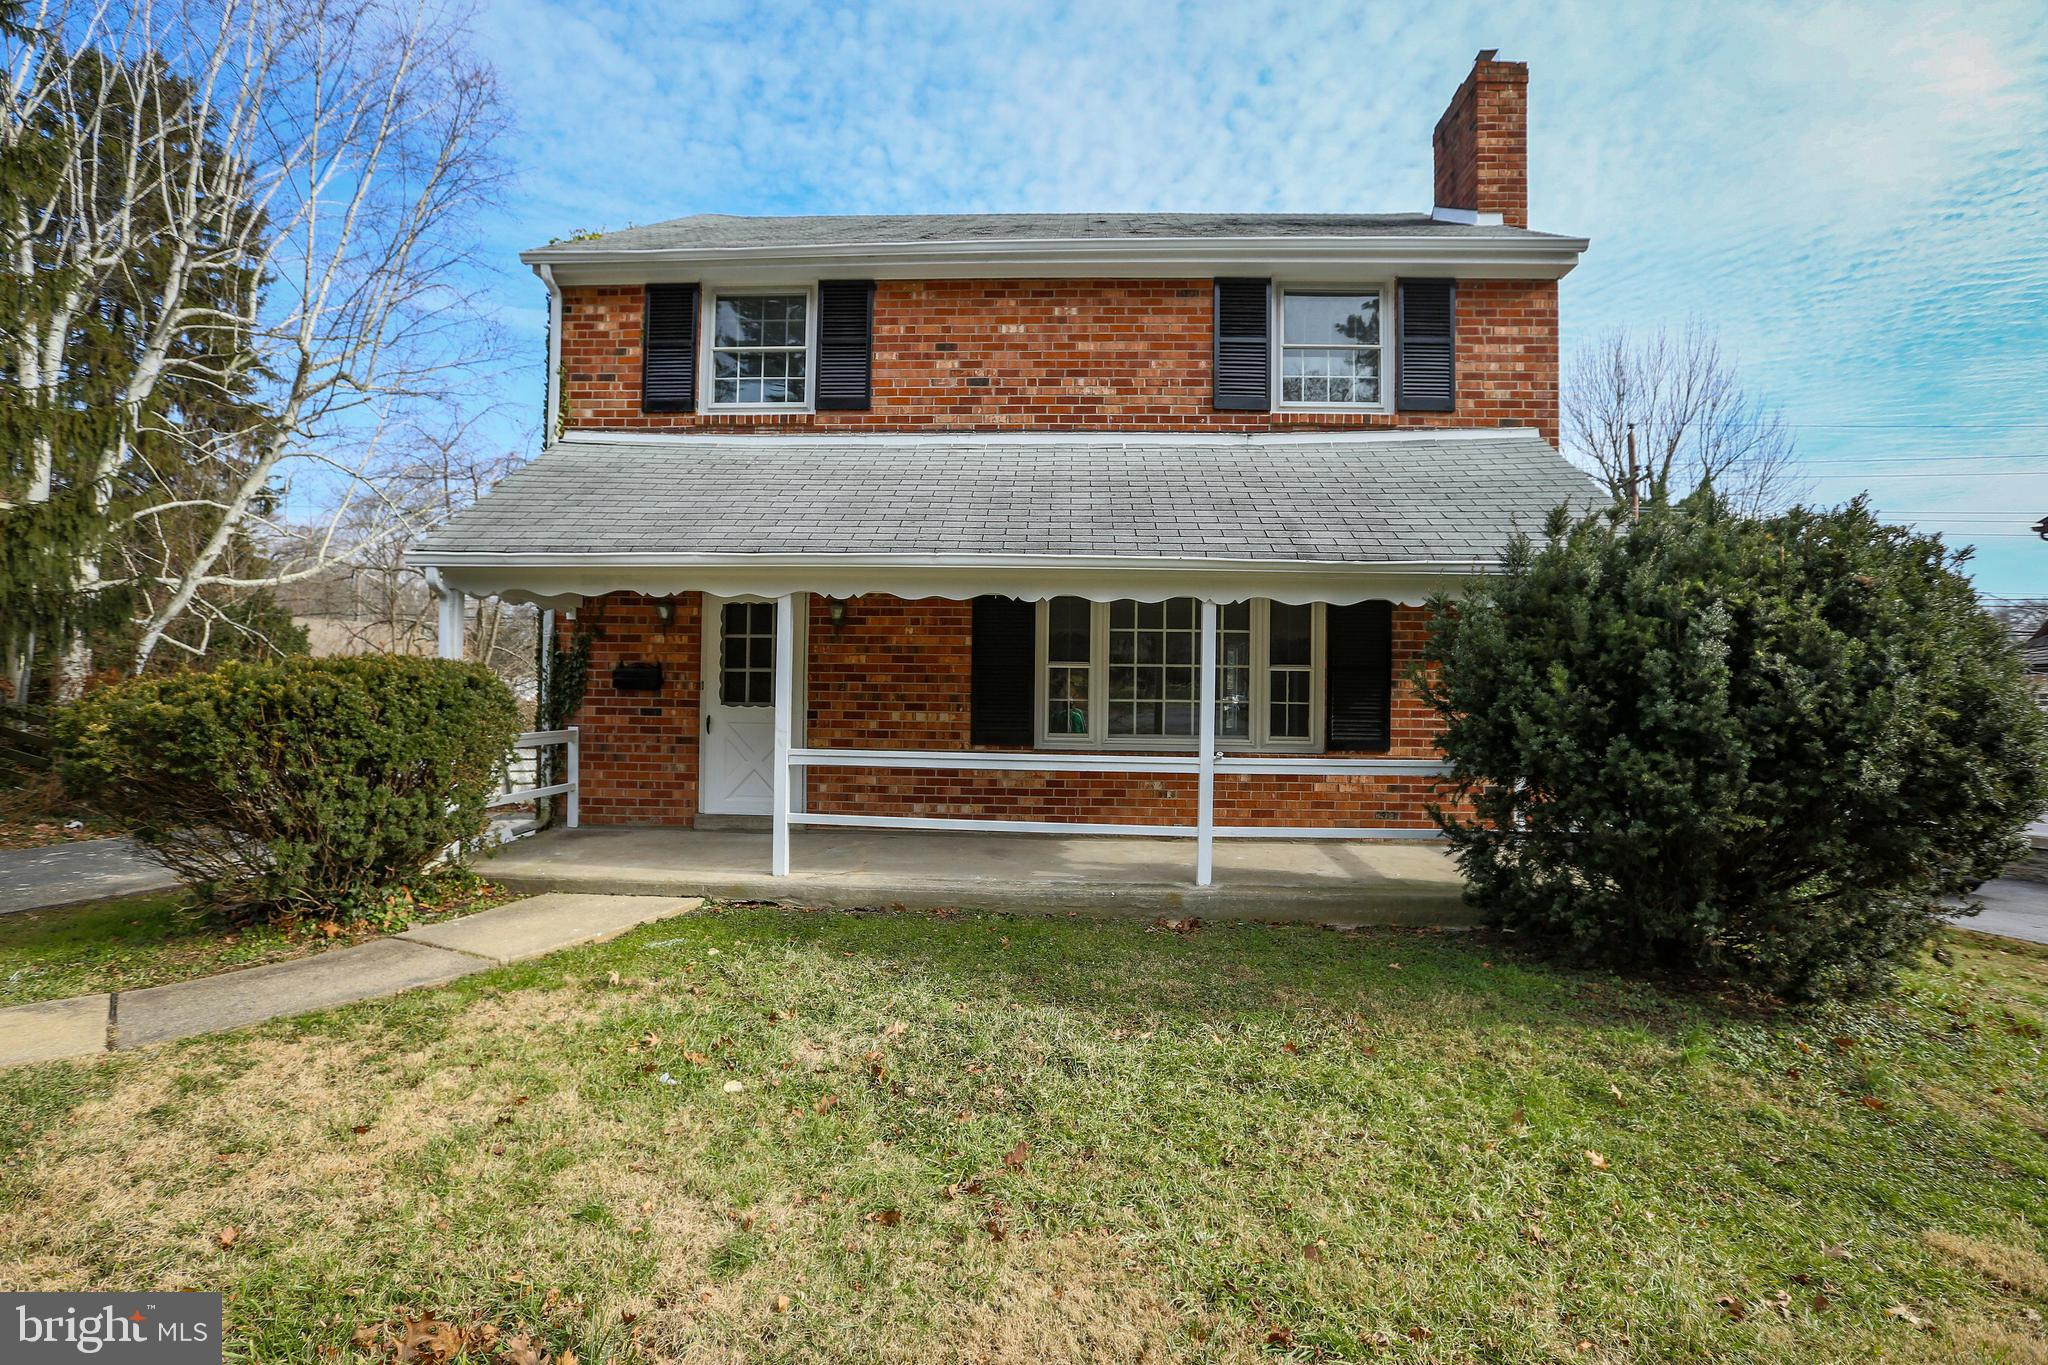 """Looking for a Single home in Springfield ?? Stop by  and check this one out!!! Large front & back yard space for use during  the up & coming spring & summer days. Walk through the front door into the main hall where you enter the bright living area with newly finished hardwood floors and fireplace for those cozy nights at """"Home"""". Accented with a gorgeous light fixture that makes the whole room shine. An inviting dining room/brand new kitchen. Complete with stainless Steel Appliances, granite counter tops and a wonderful island, waiting for that perfect dinner to be served. Upstairs features 3 bedrooms and a full hall bath. The master bedroom also features a bright and refreshing tiled bathroom with a shower stall and new vanity, in the privacy of your own space.  Additional to all of this there is a finished basement with powder room and separate storage area. Springfield Township offers an excellent library, School District, Country Club with municipal golf course, a swimming pool, clubhouse, and indoor ice skating rink, great restaurants, local shopping and public transportation near by.  Call for your showing today!!!!!"""